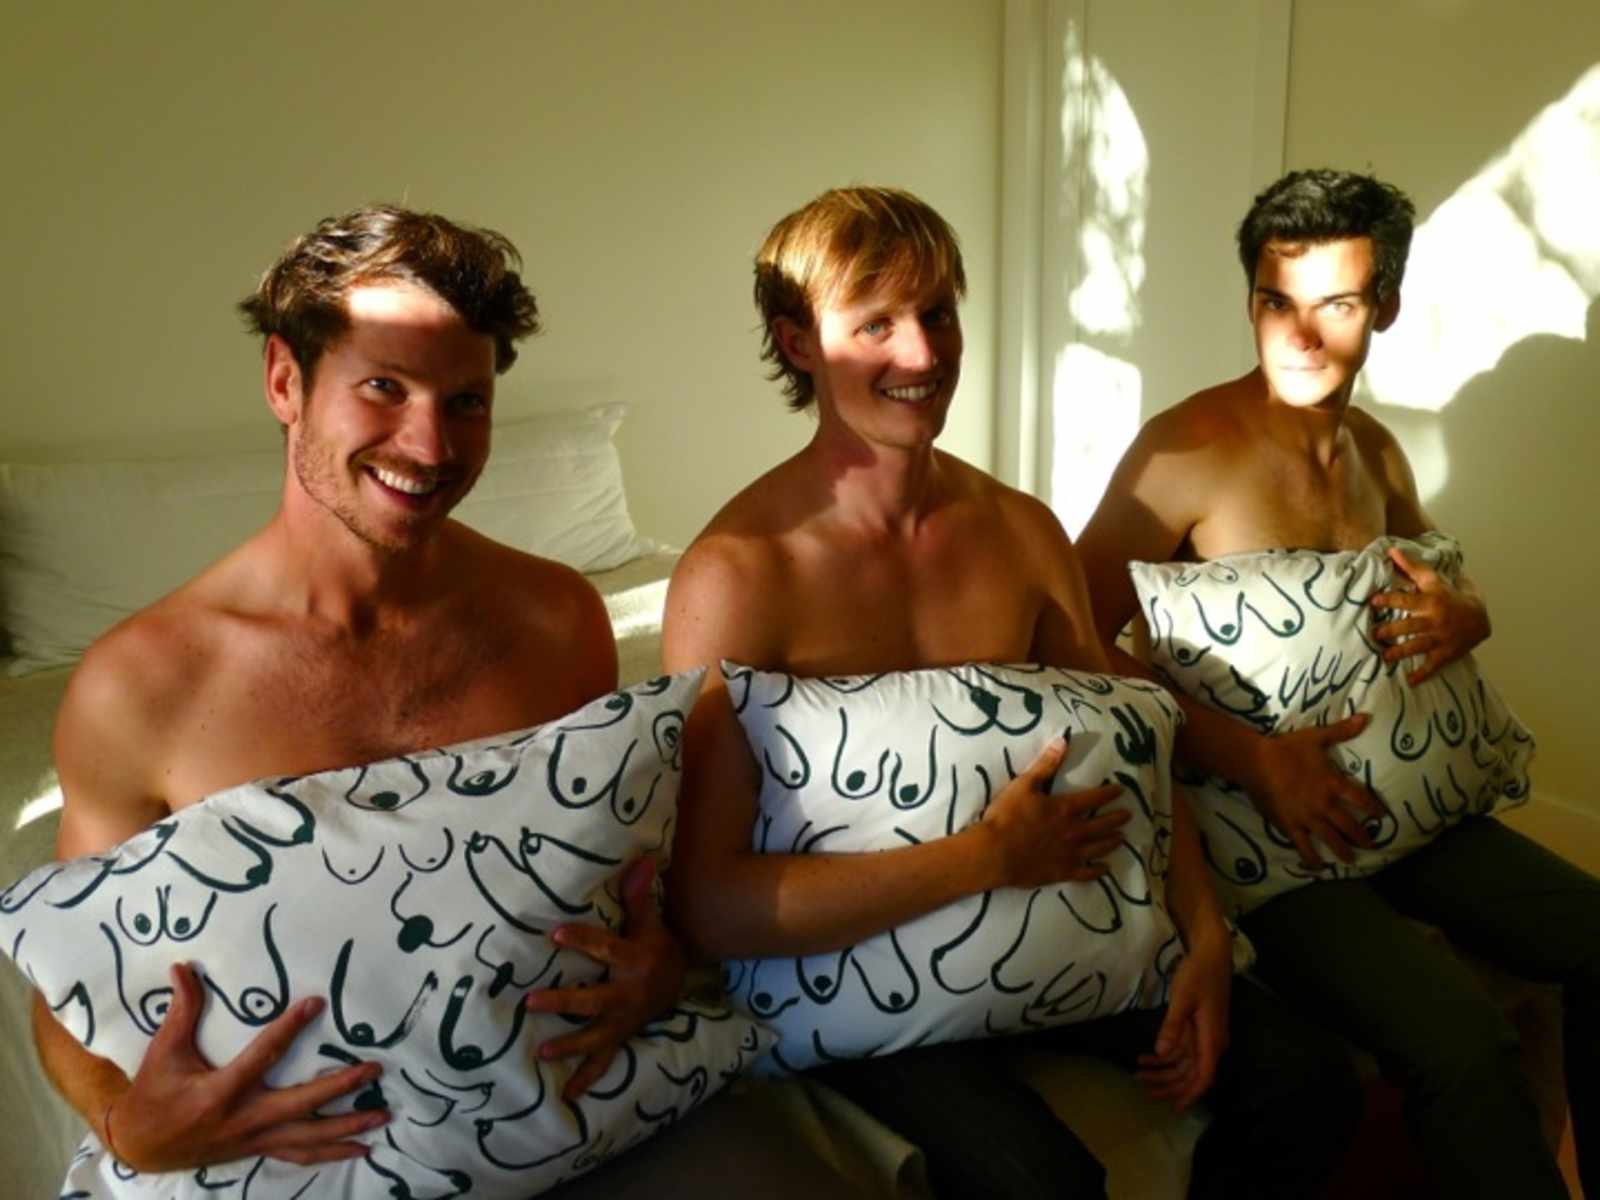 uptown almanac's borderline ironic gift guide 2012: boobs pillowcase